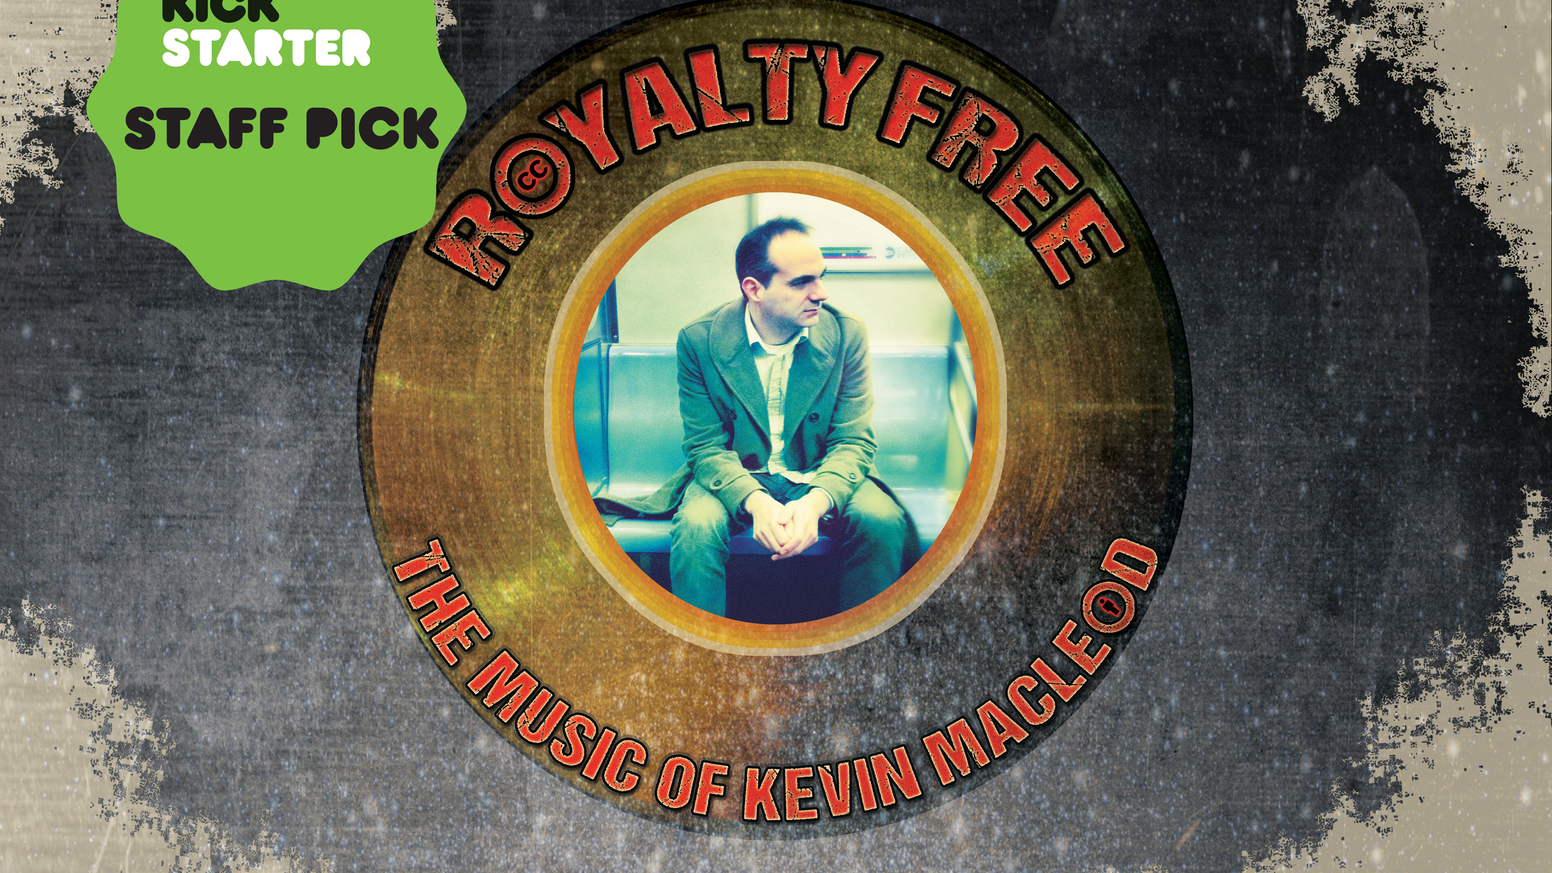 A documentary on composer Kevin MacLeod, his practice of releasing all his music for free and how he unwittingly became one of the most heard composers in the world with his work ending up in millions of videos, thousands of films, and many odd places.